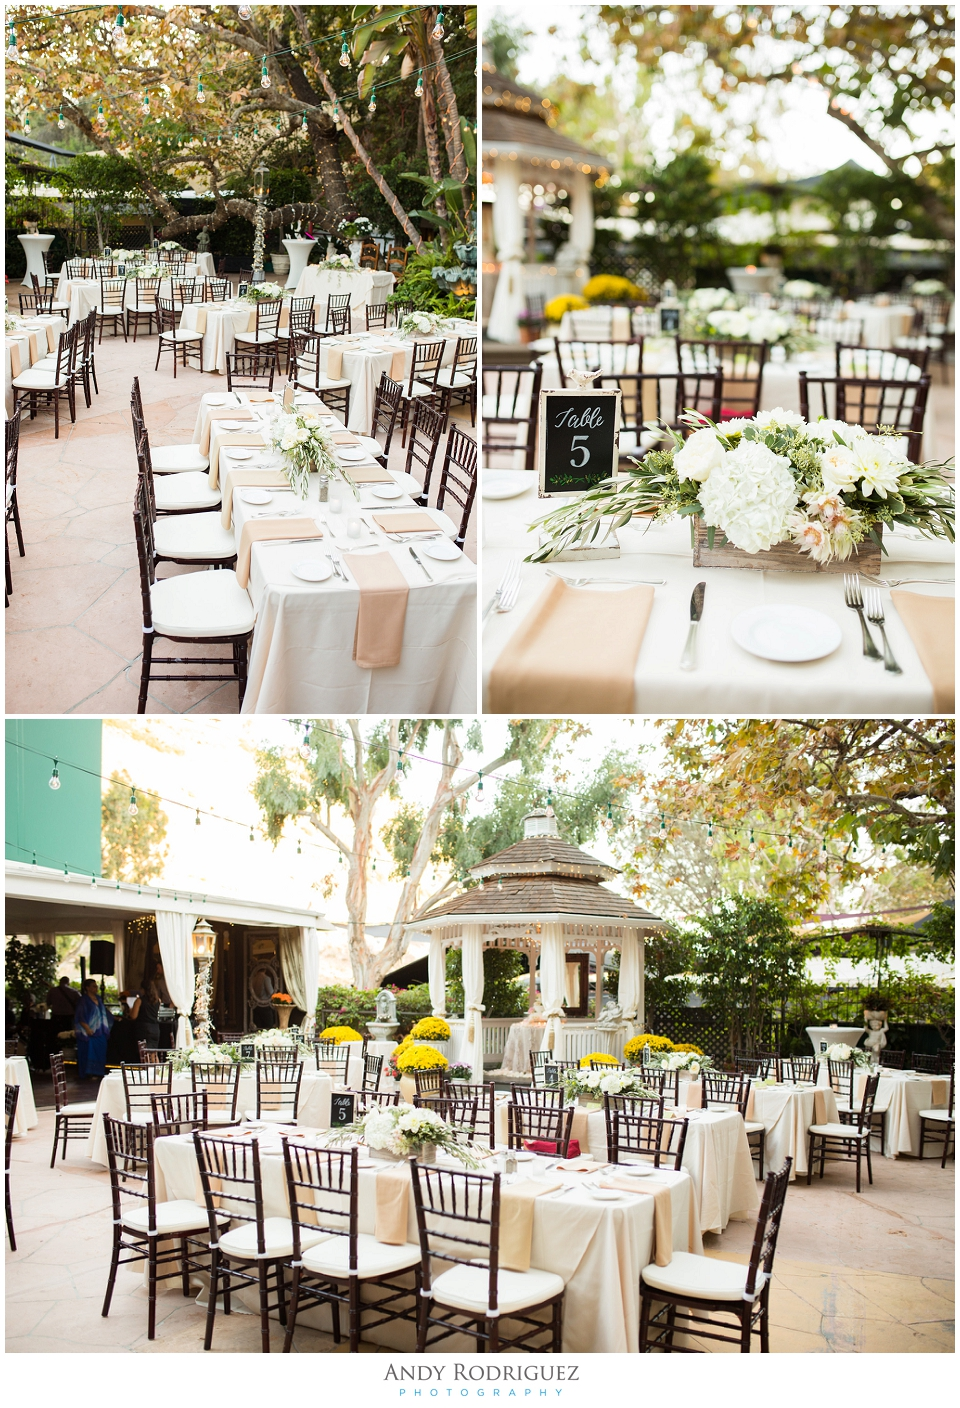 Tivoli Terrace Wedding Reception Details